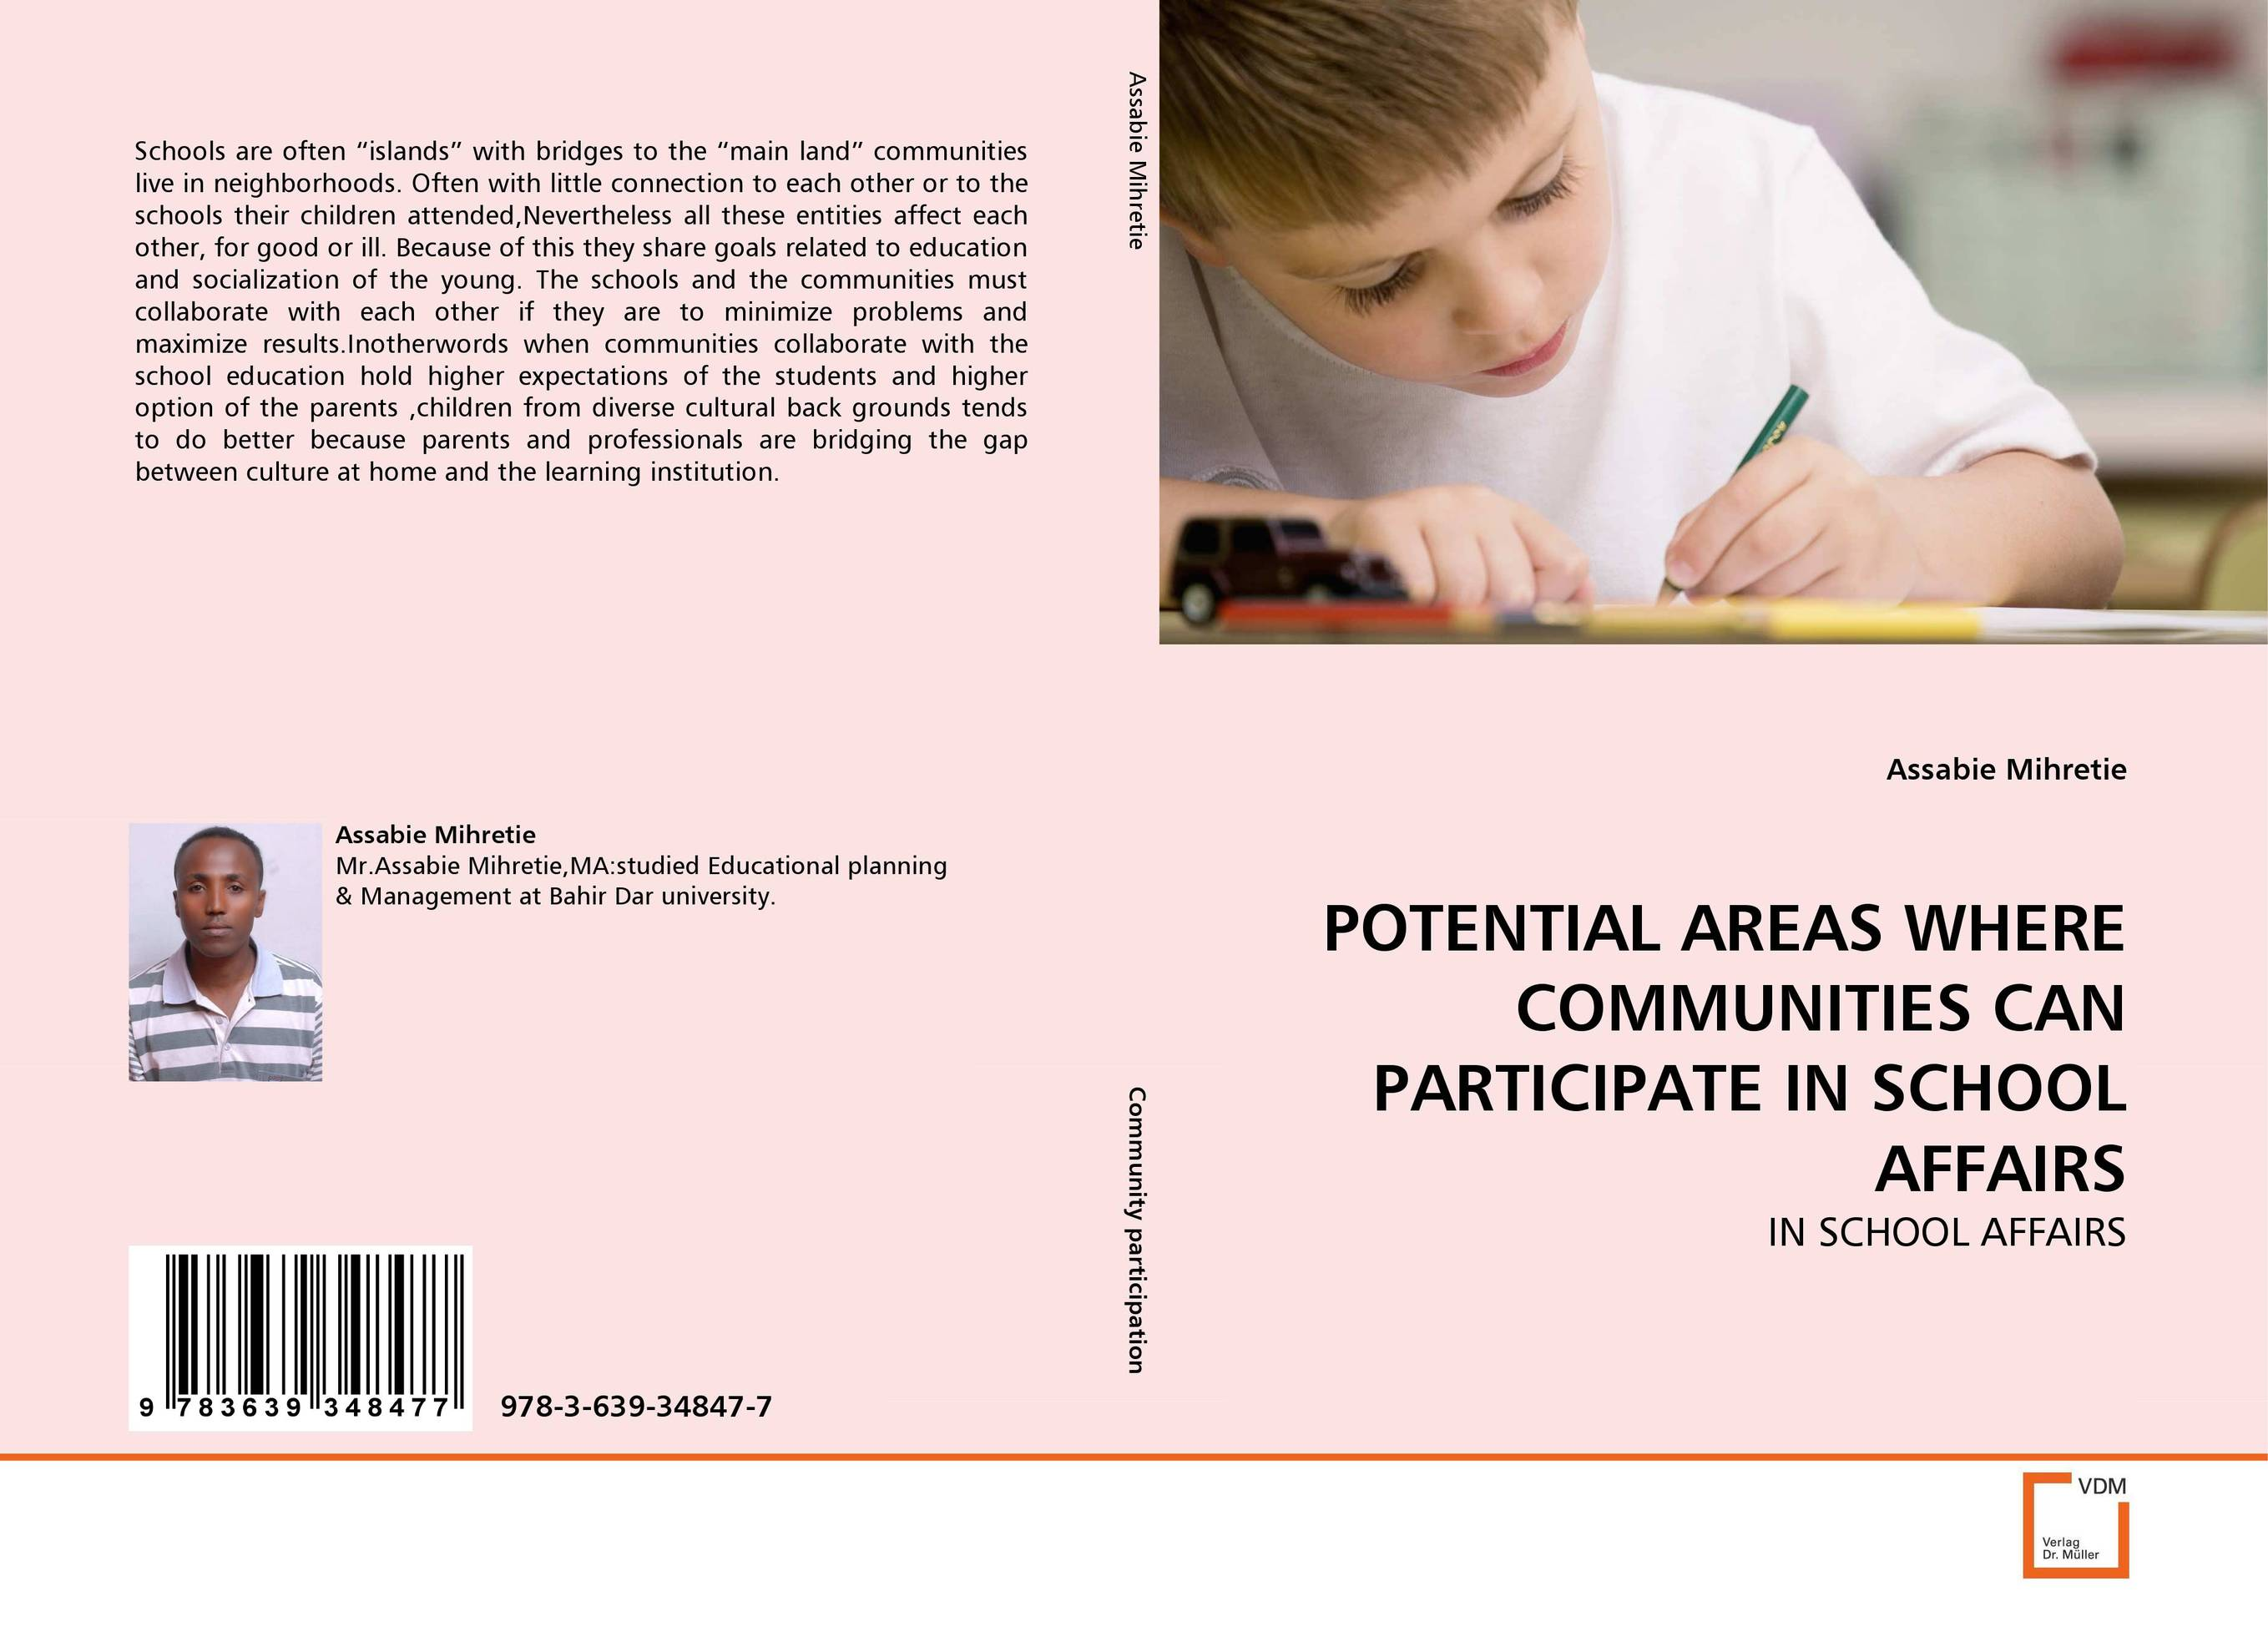 POTENTIAL AREAS WHERE COMMUNITIES CAN PARTICIPATE IN SCHOOL AFFAIRS public parks – the key to livable communities